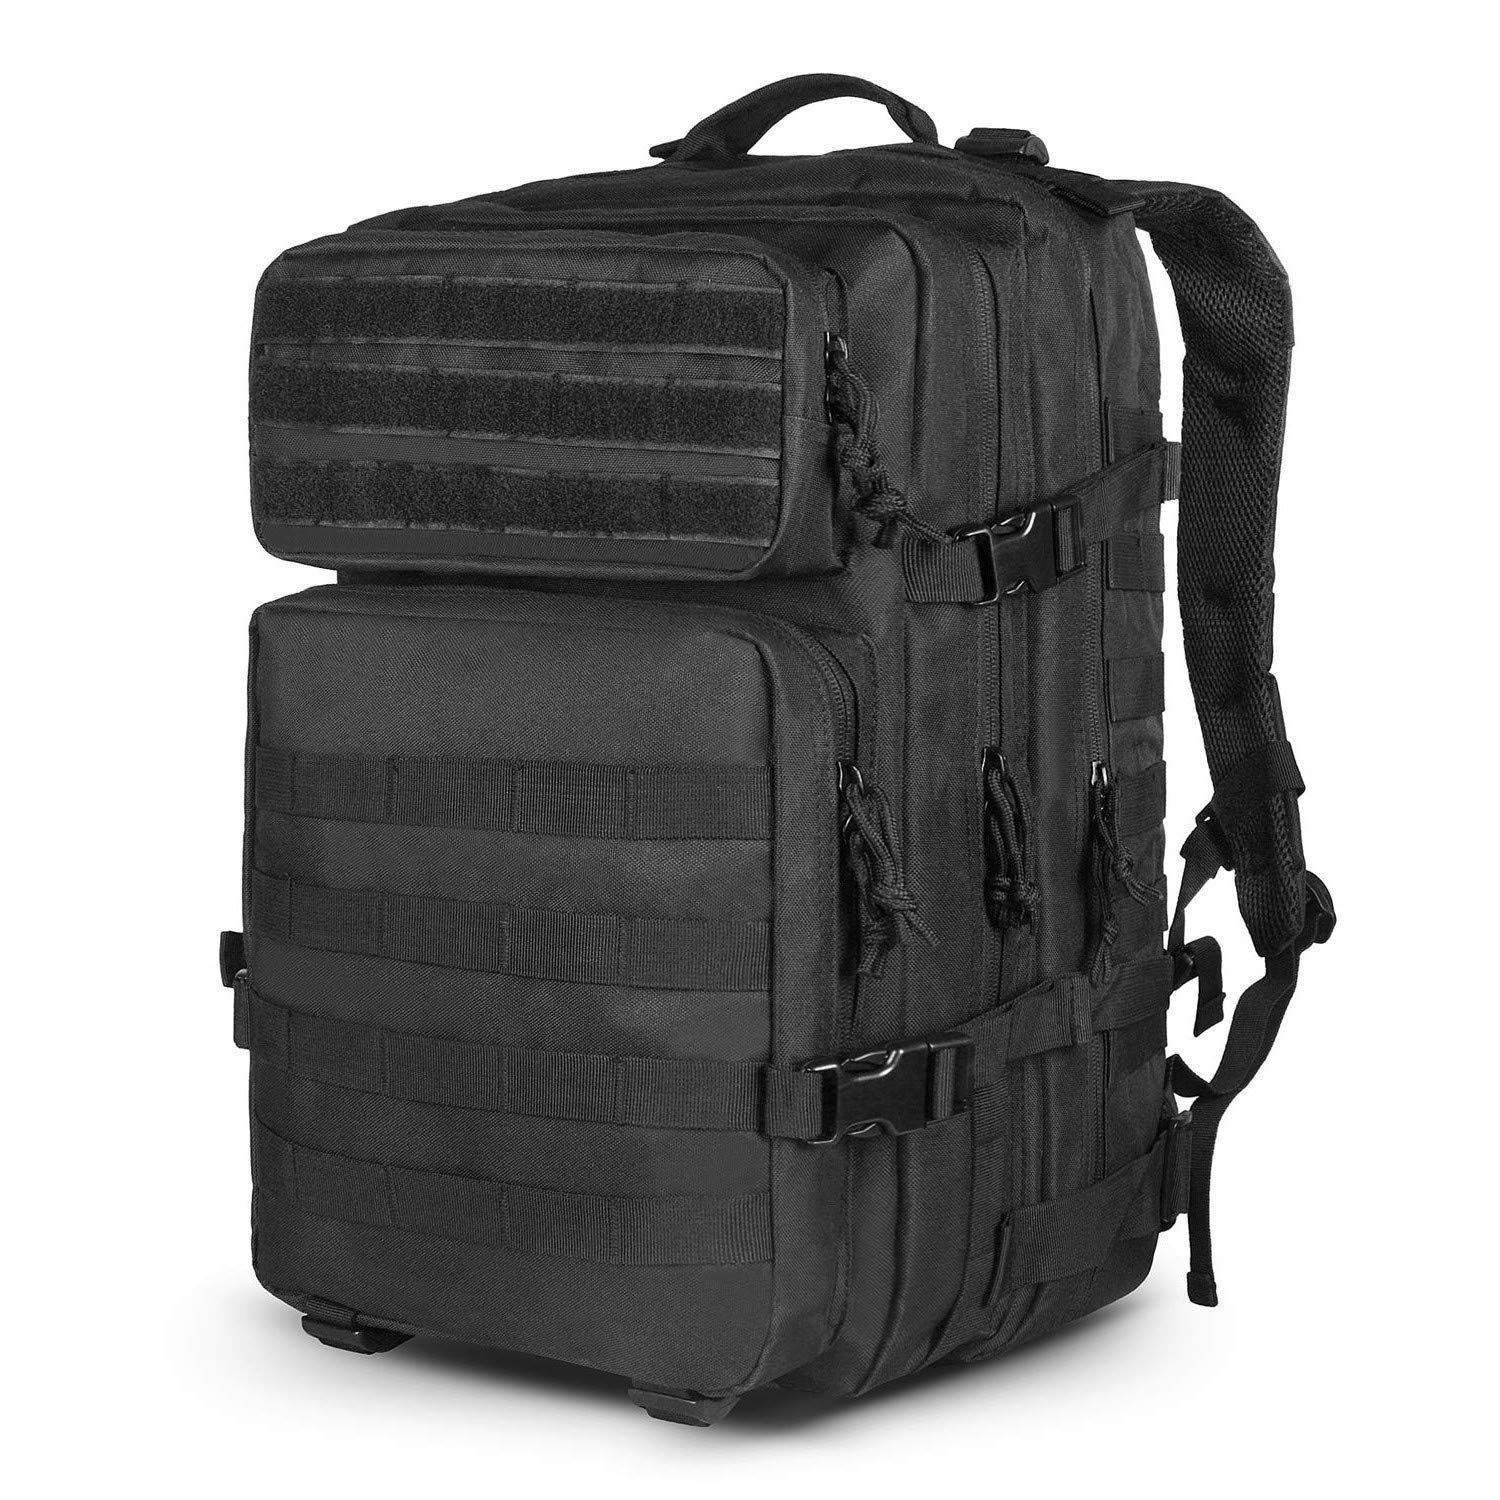 vieykll Military Rucksack Outdoor Tactical Backpack Camping Trip Backpack 45L Hiking Backpack [並行輸入品] B07R4TYLB4